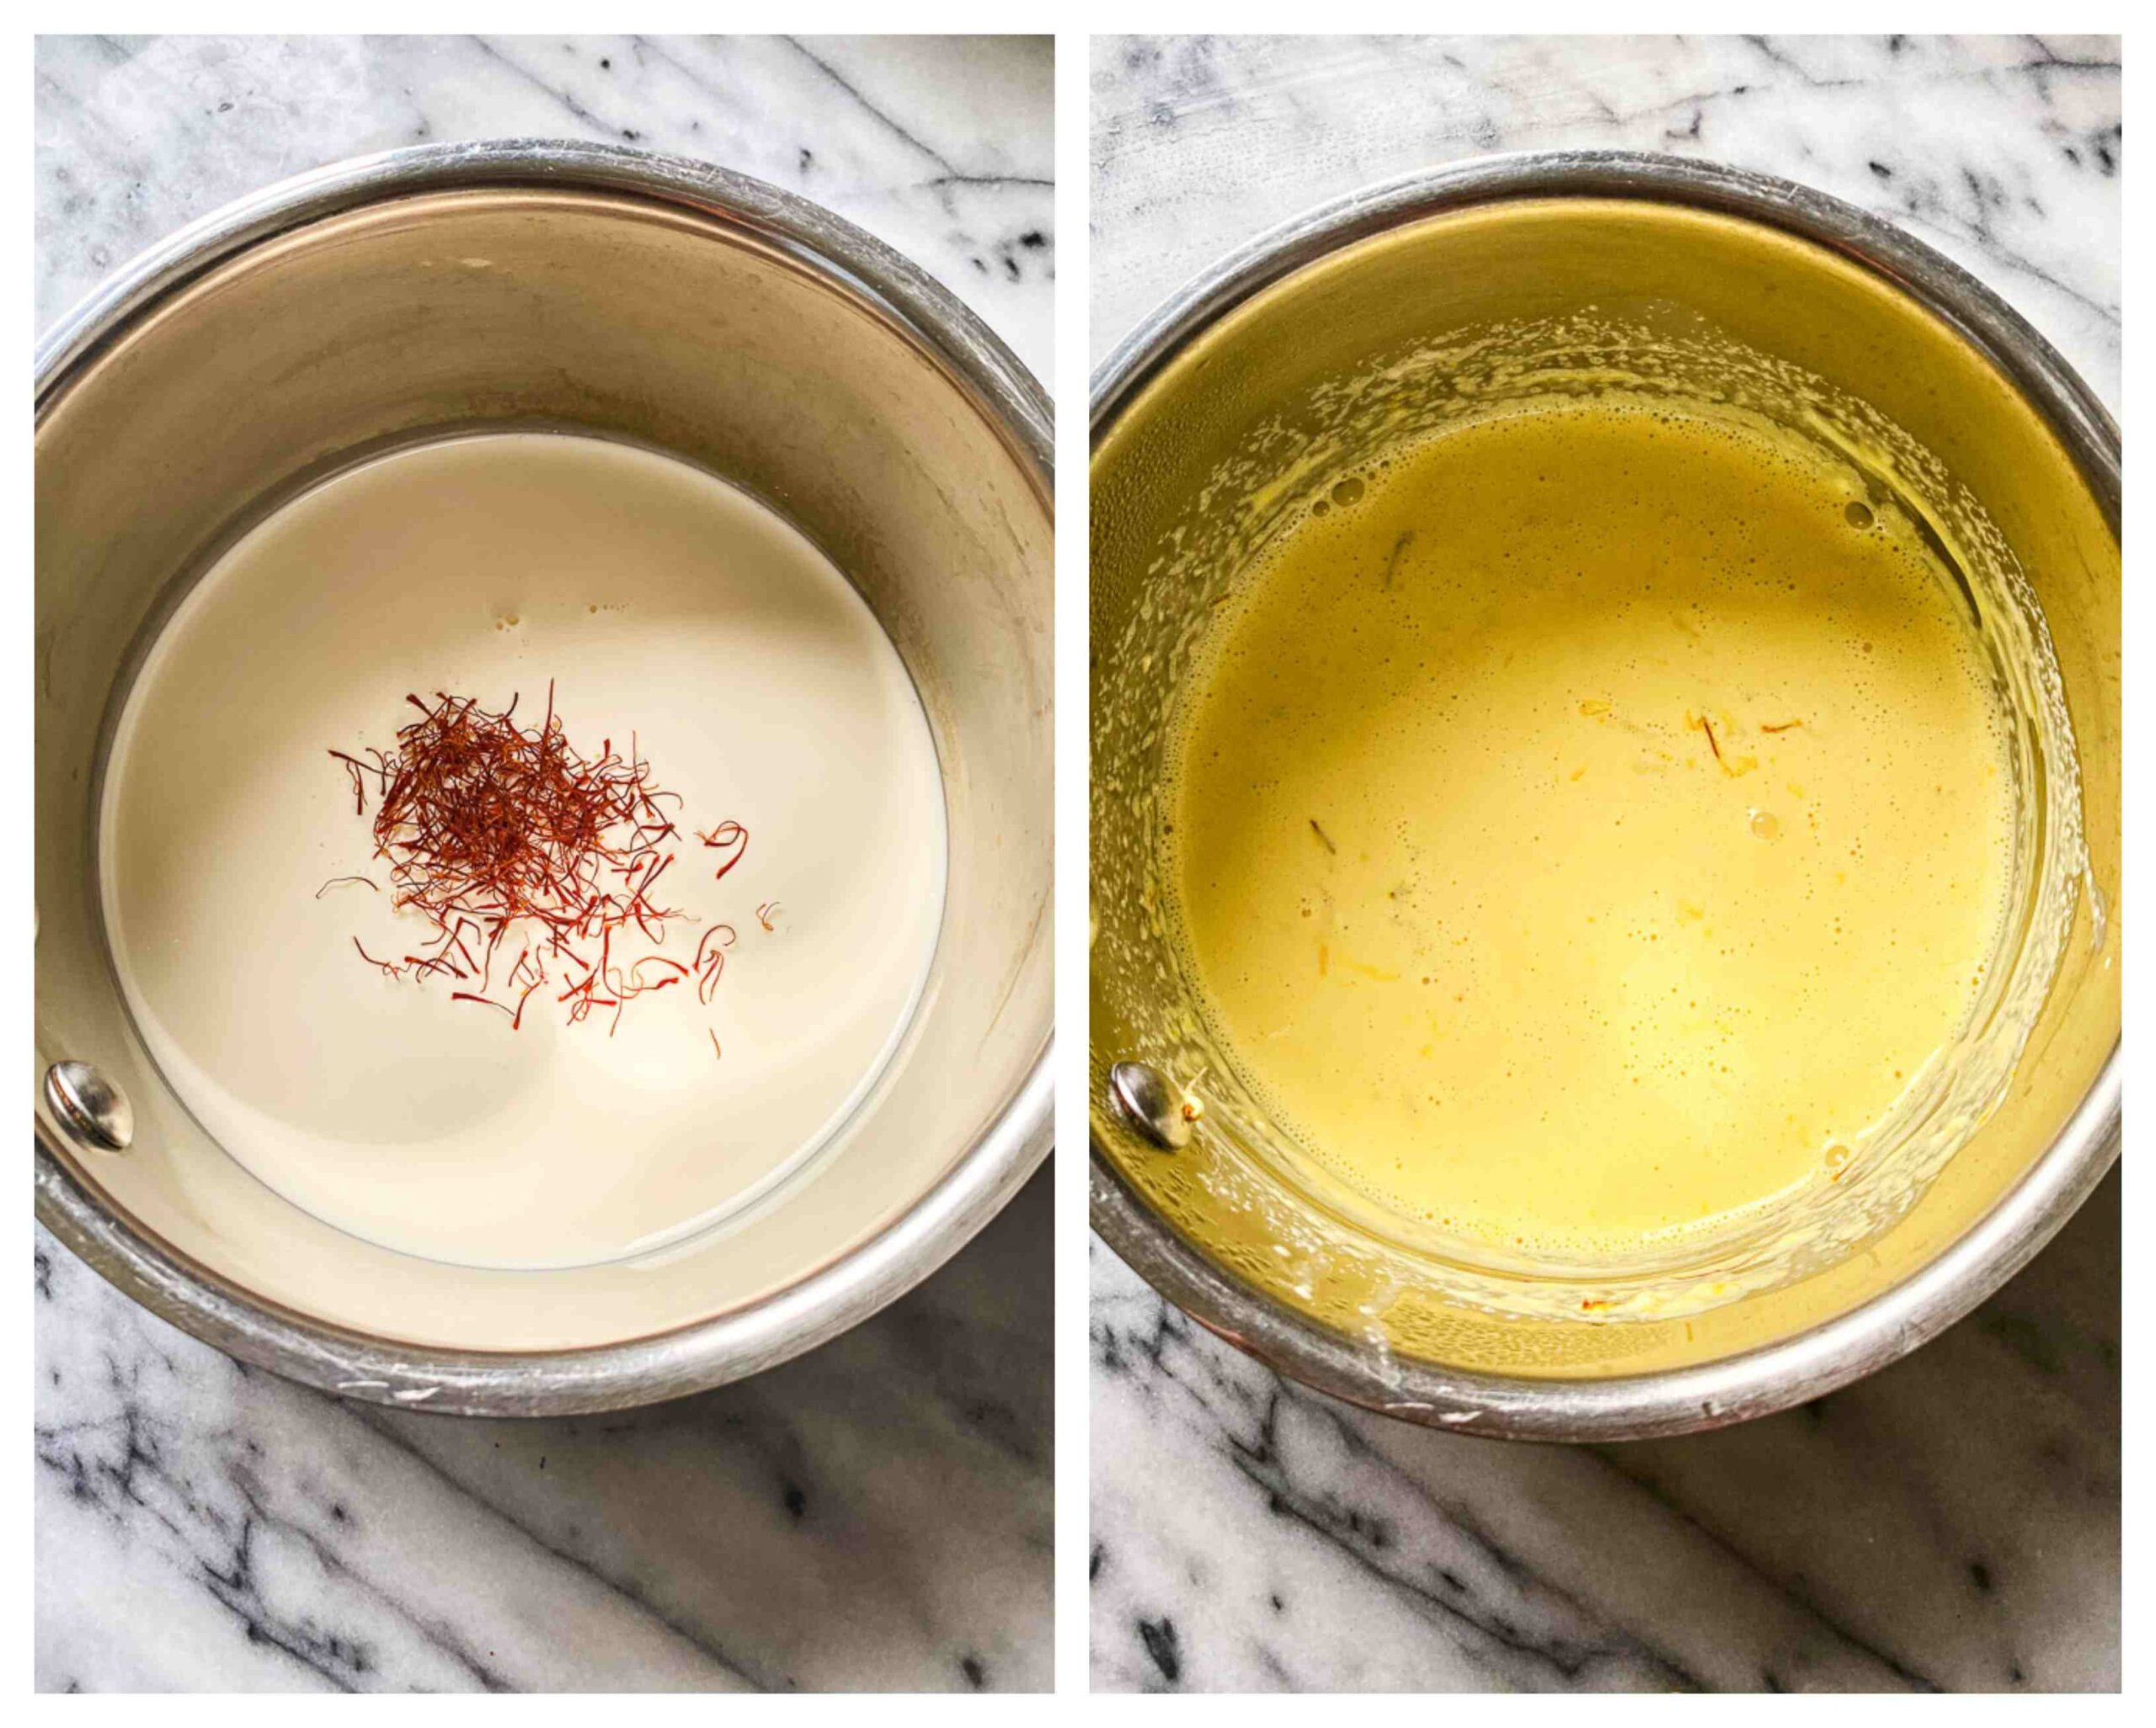 cream infused with saffron thread before and after images